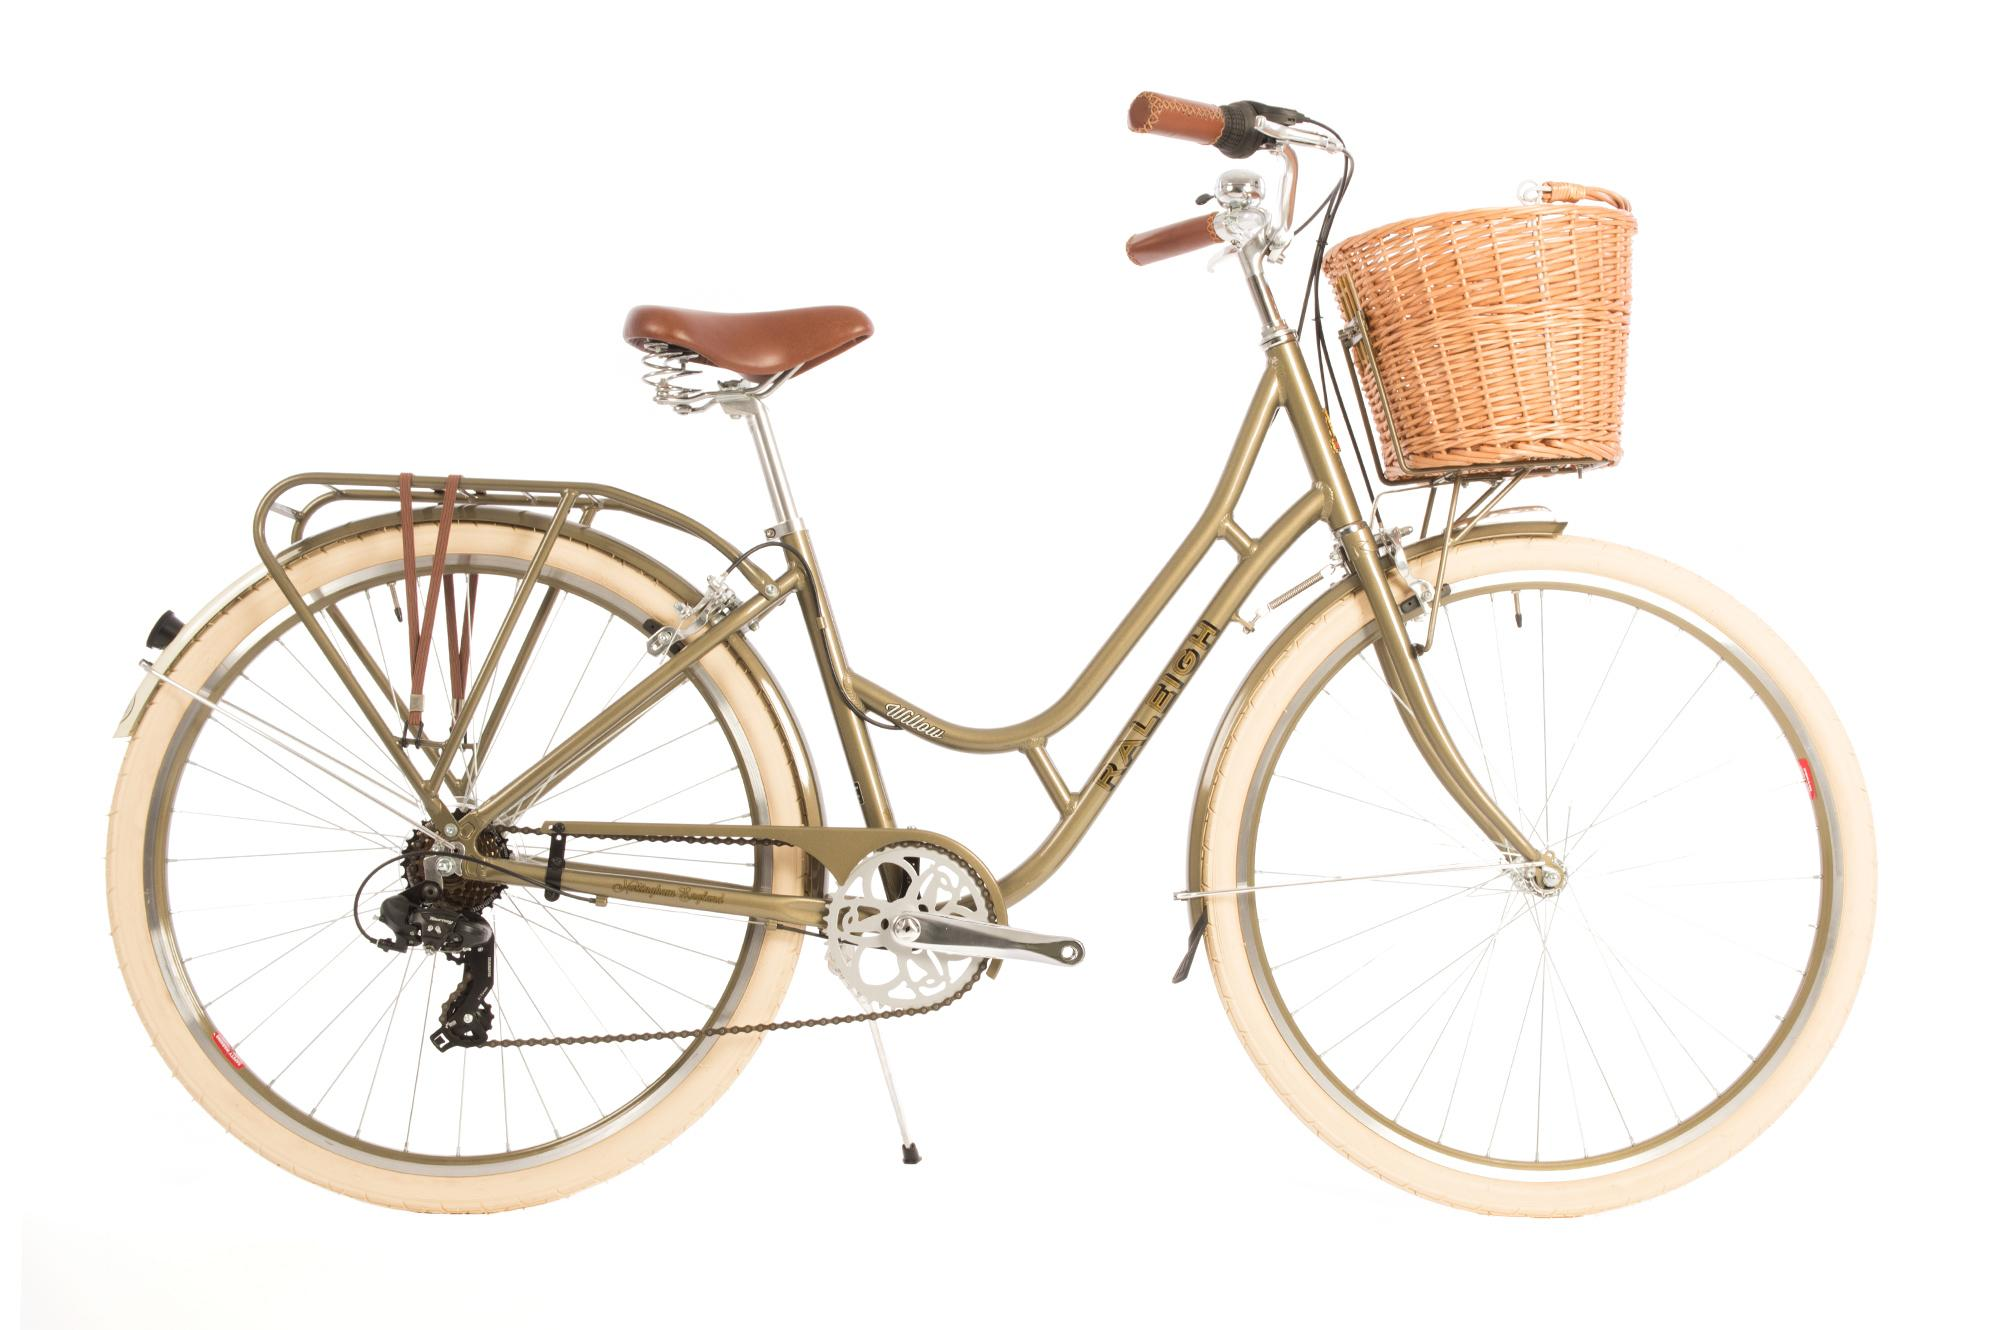 1fd66371017 The 2019 Raleigh Willow is a Women s classic style bike with a low step  frame